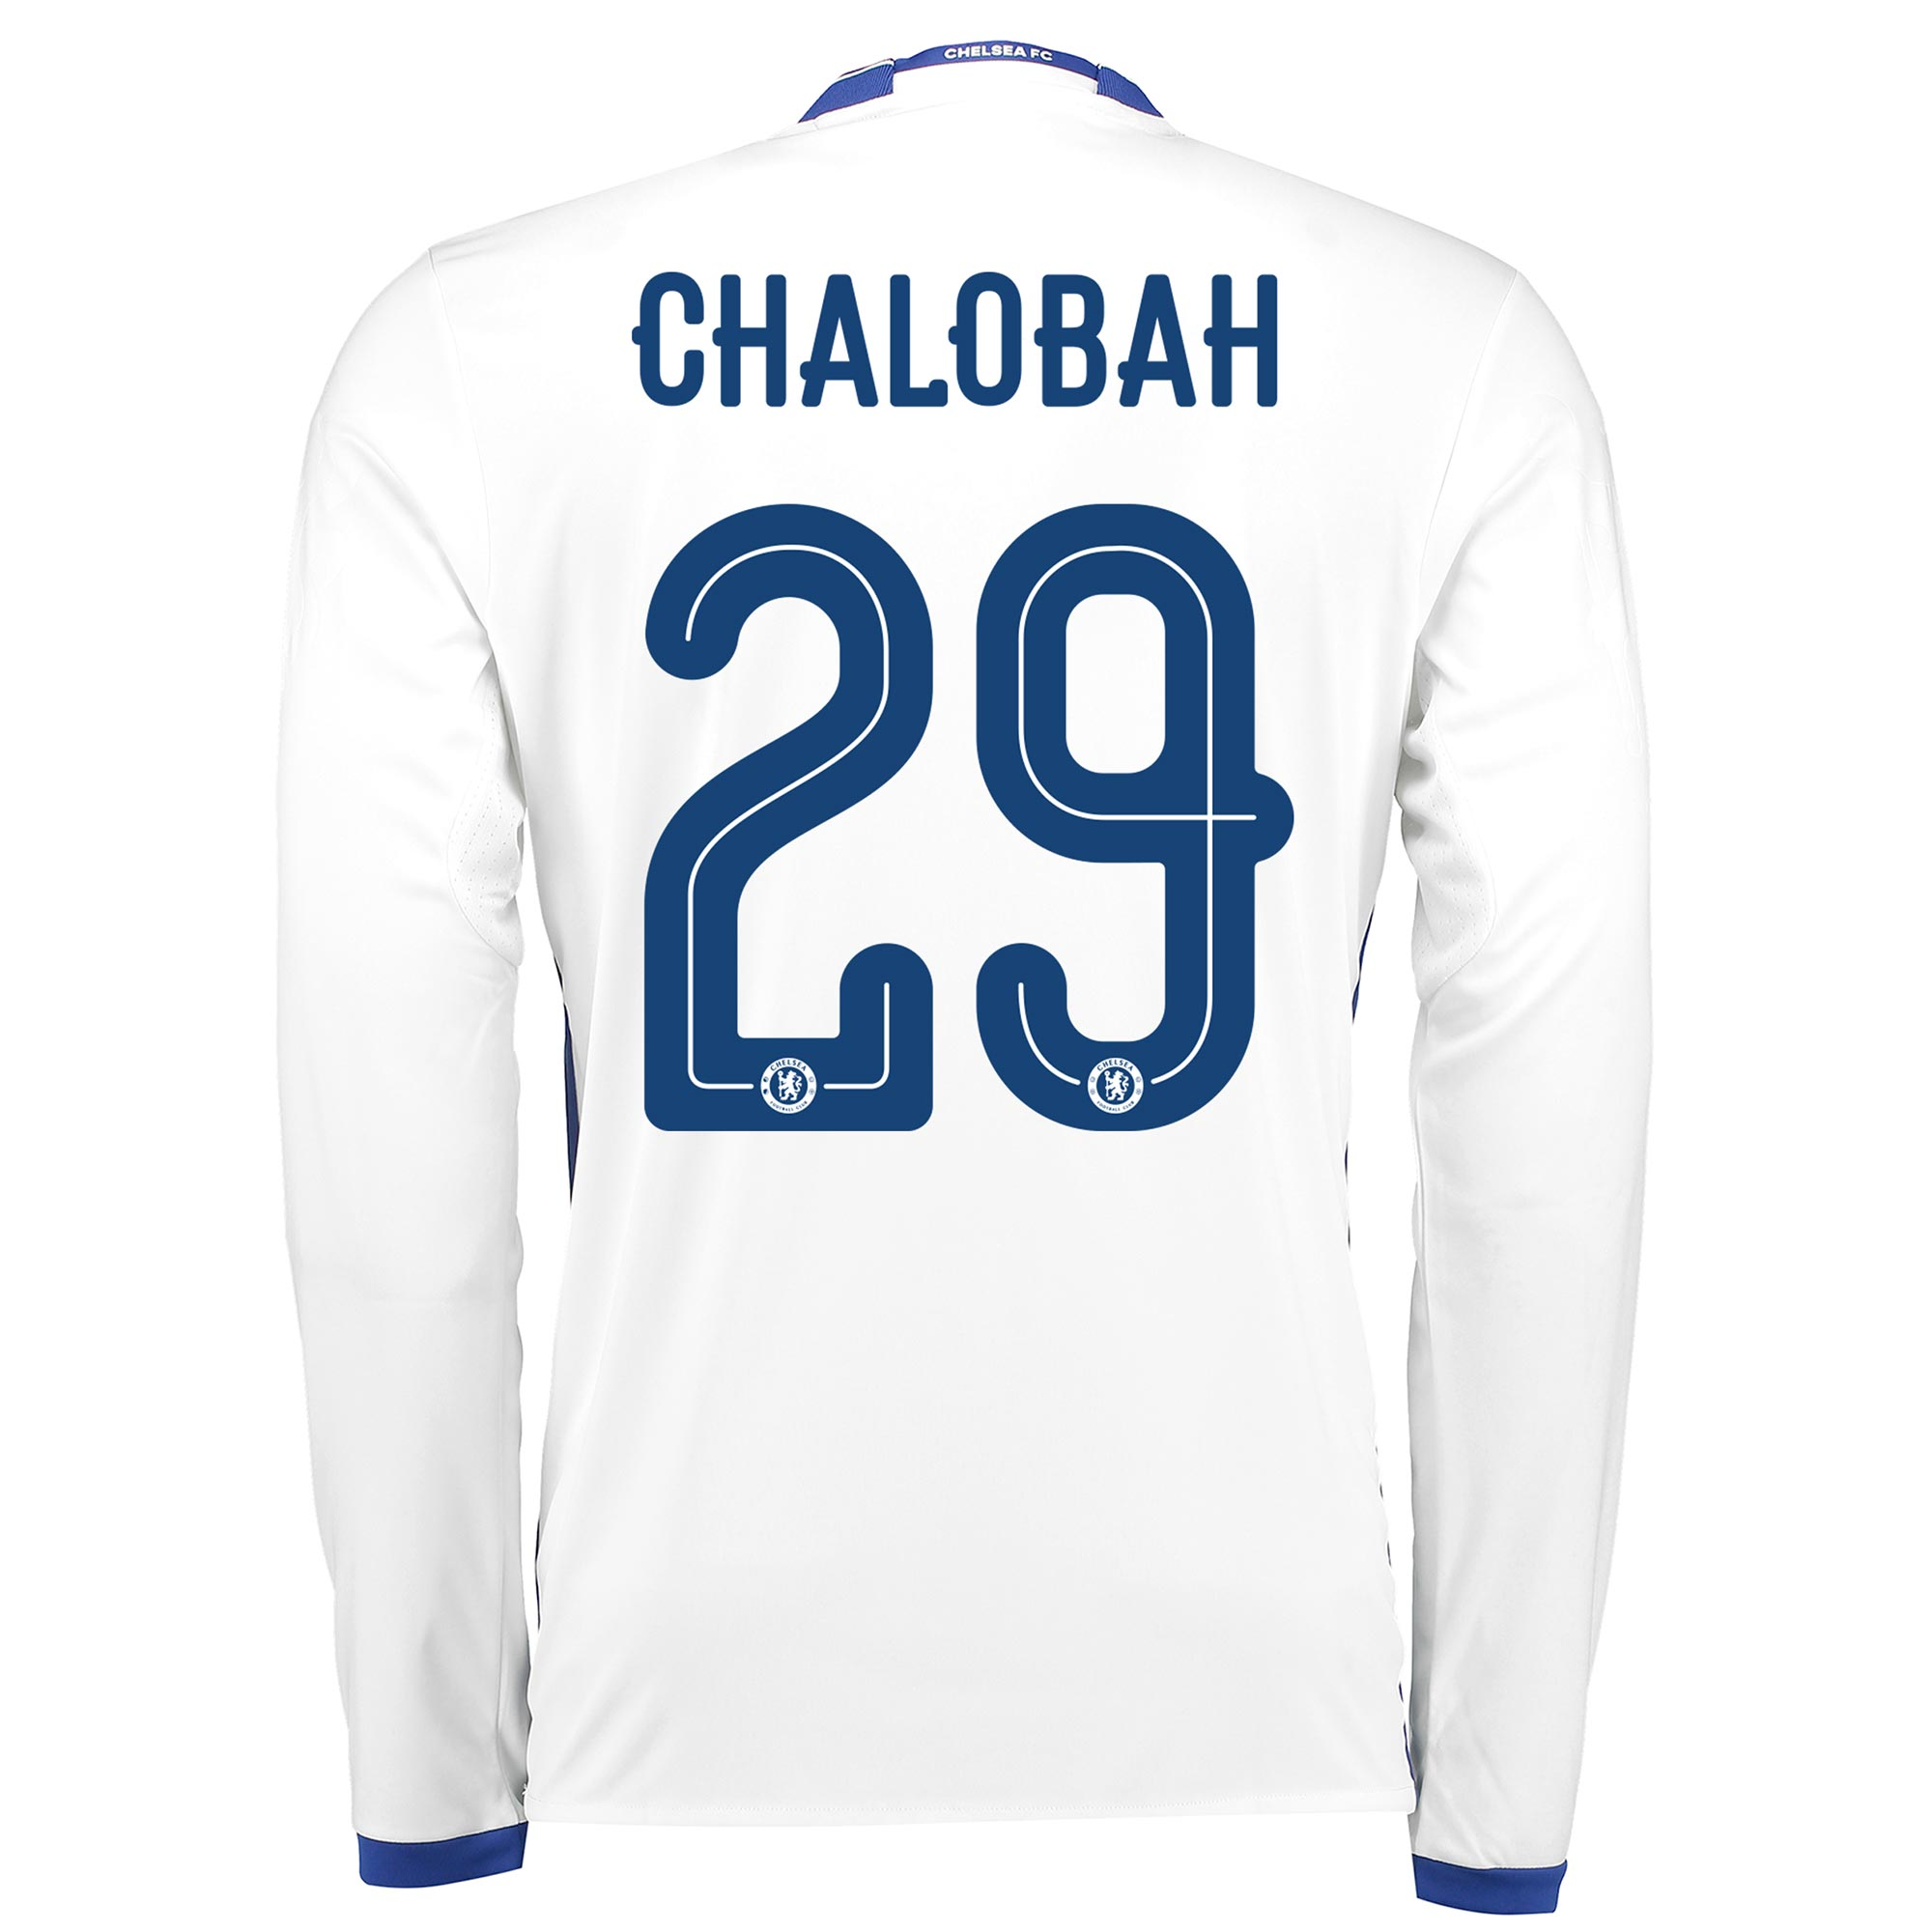 Chelsea Linear Third Shirt 16-17 - Long Sleeve with Chalobah 29 printi